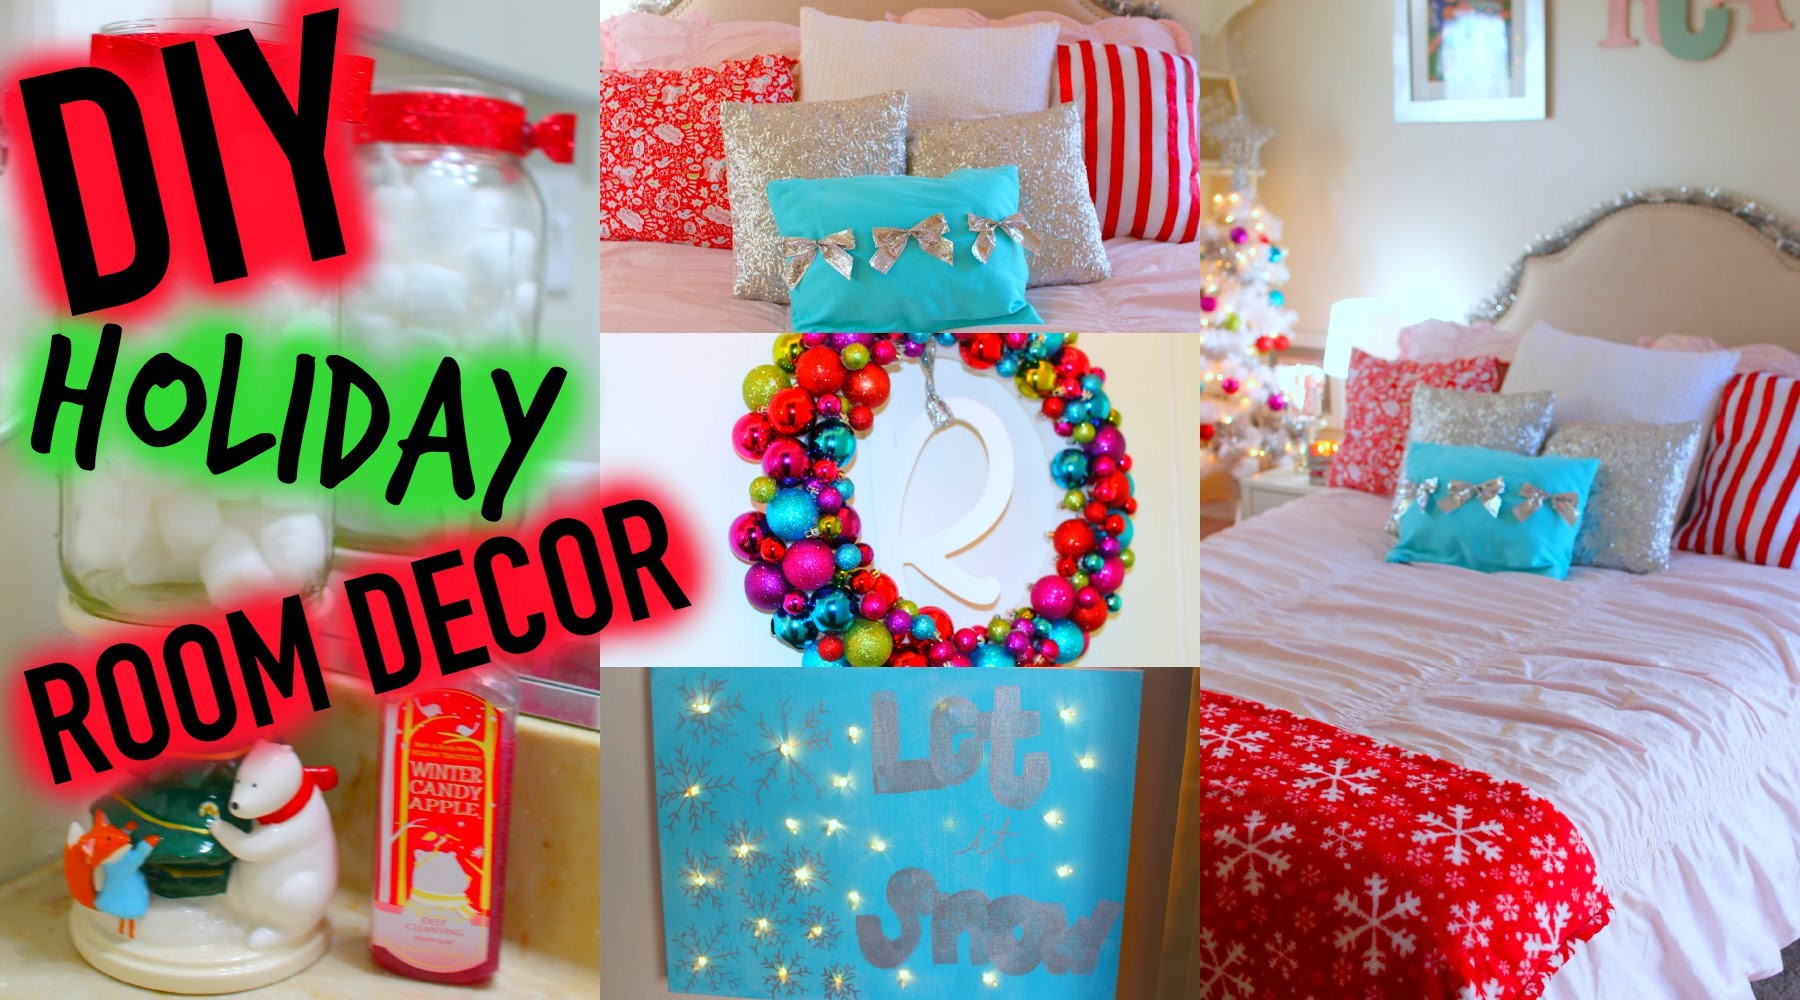 ROOM TOUR. HOLIDAY EDITION + DIY Holiday Room Decor!